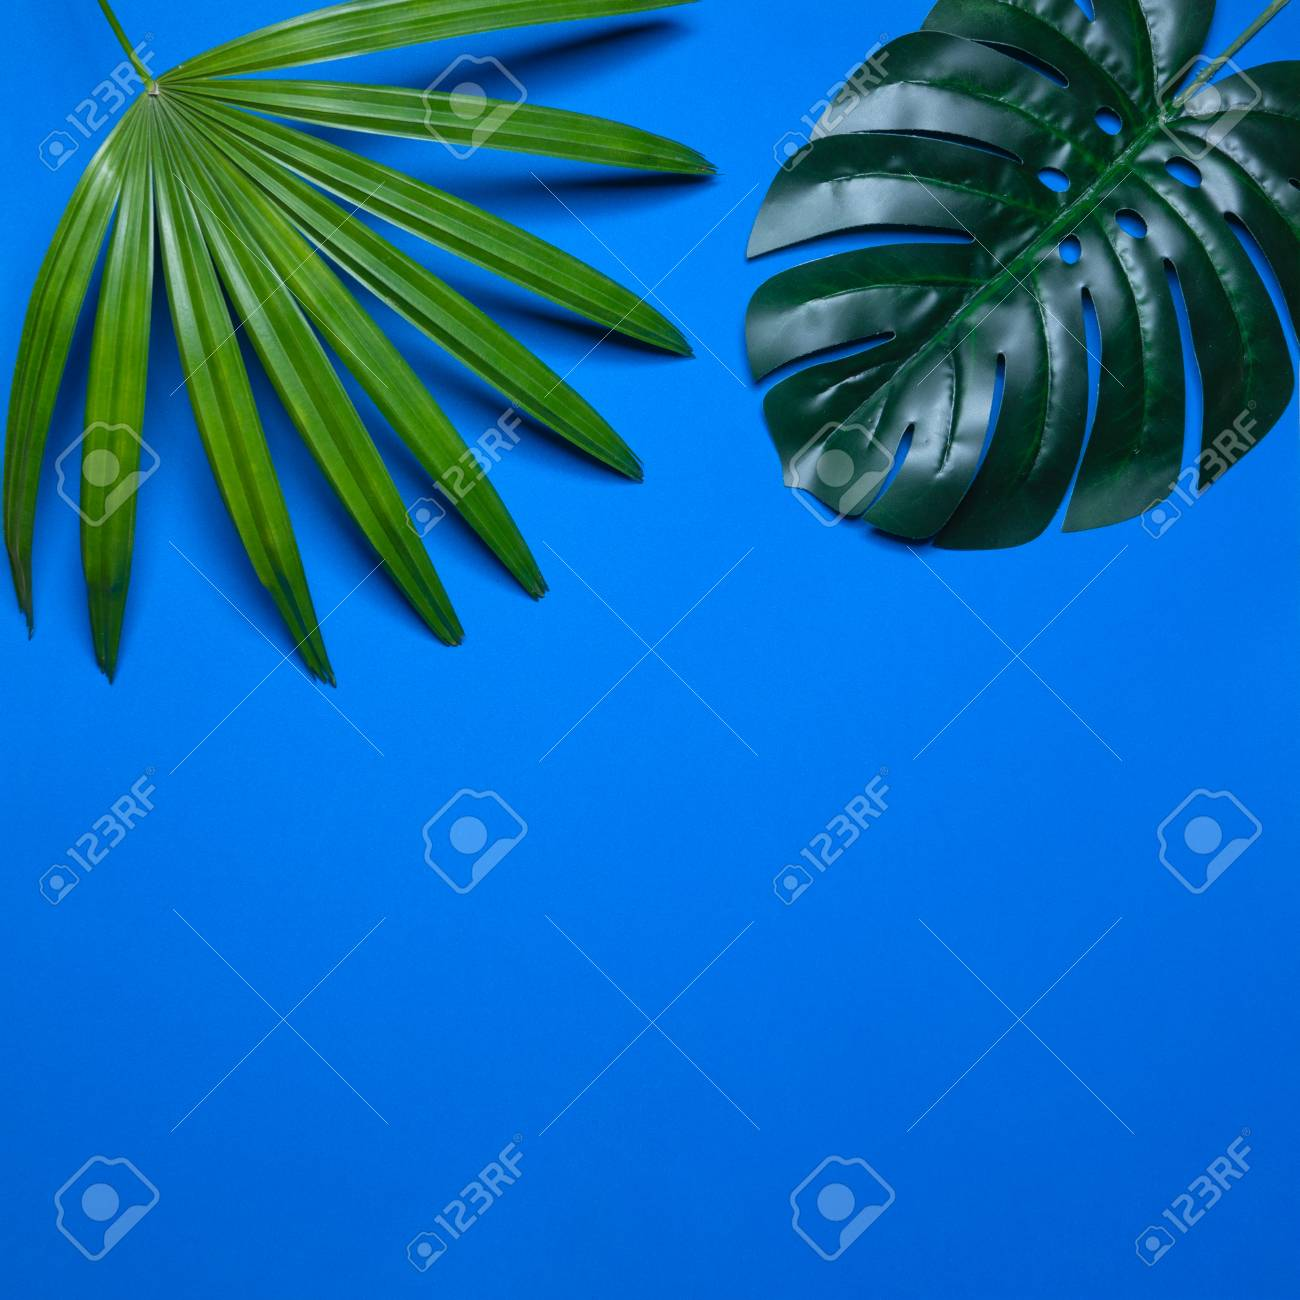 Trendy summer tropical leaves, Tropical leaves on blue background, Summer tropical backgrounds, Minimal concept, Flat lay - 104430261